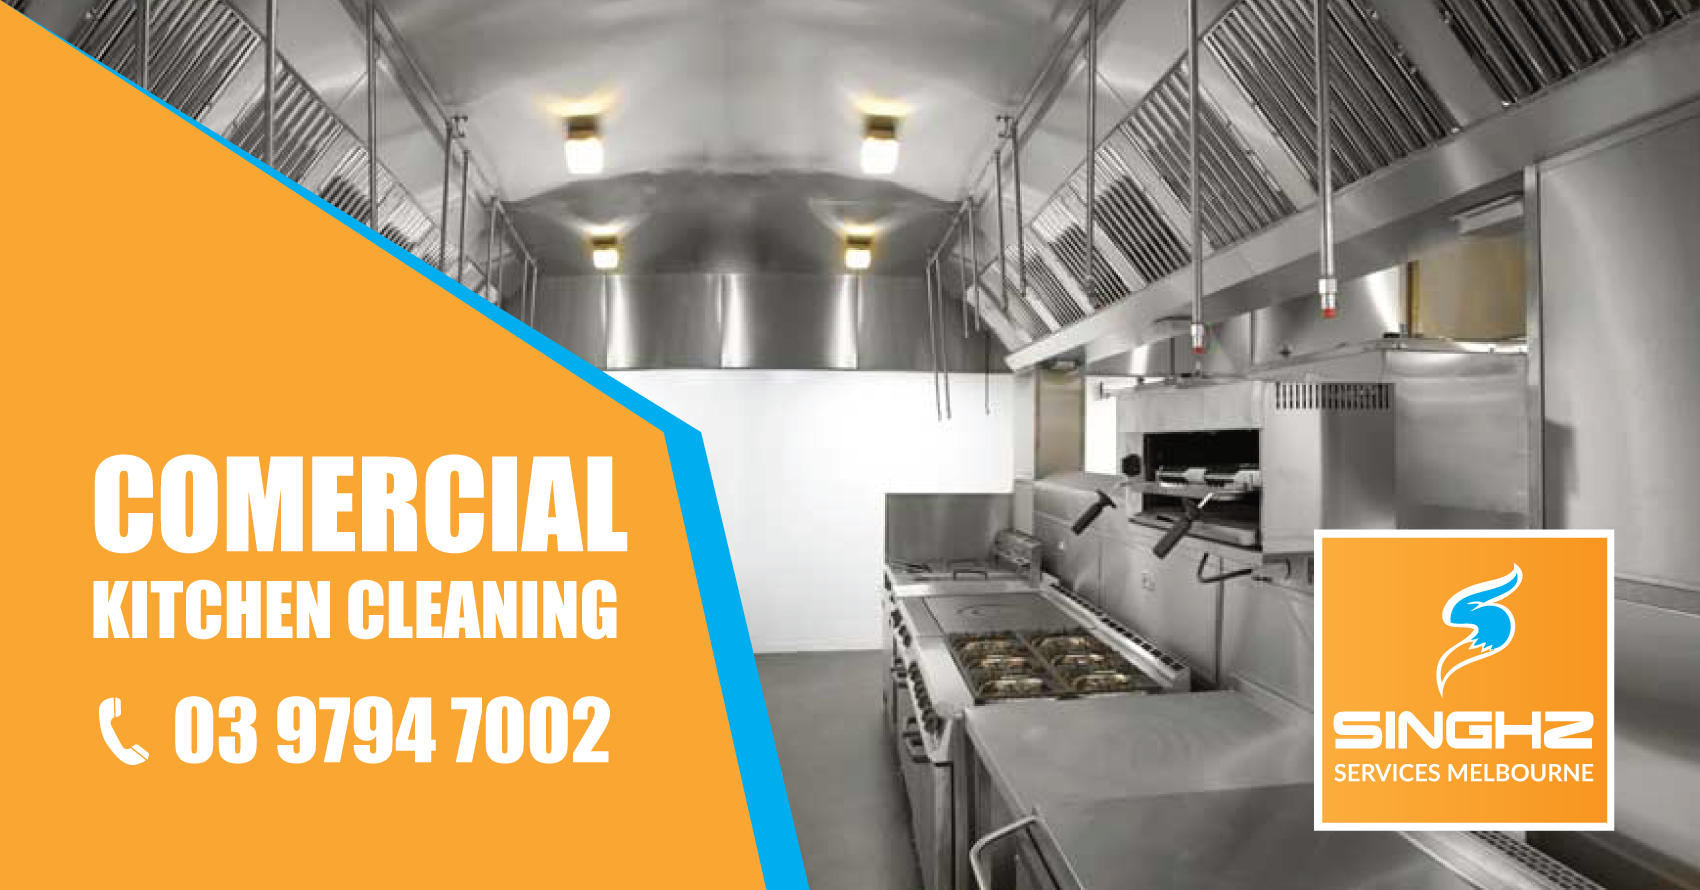 Our restaurant kitchen canopy cleaning services can provide a full ...